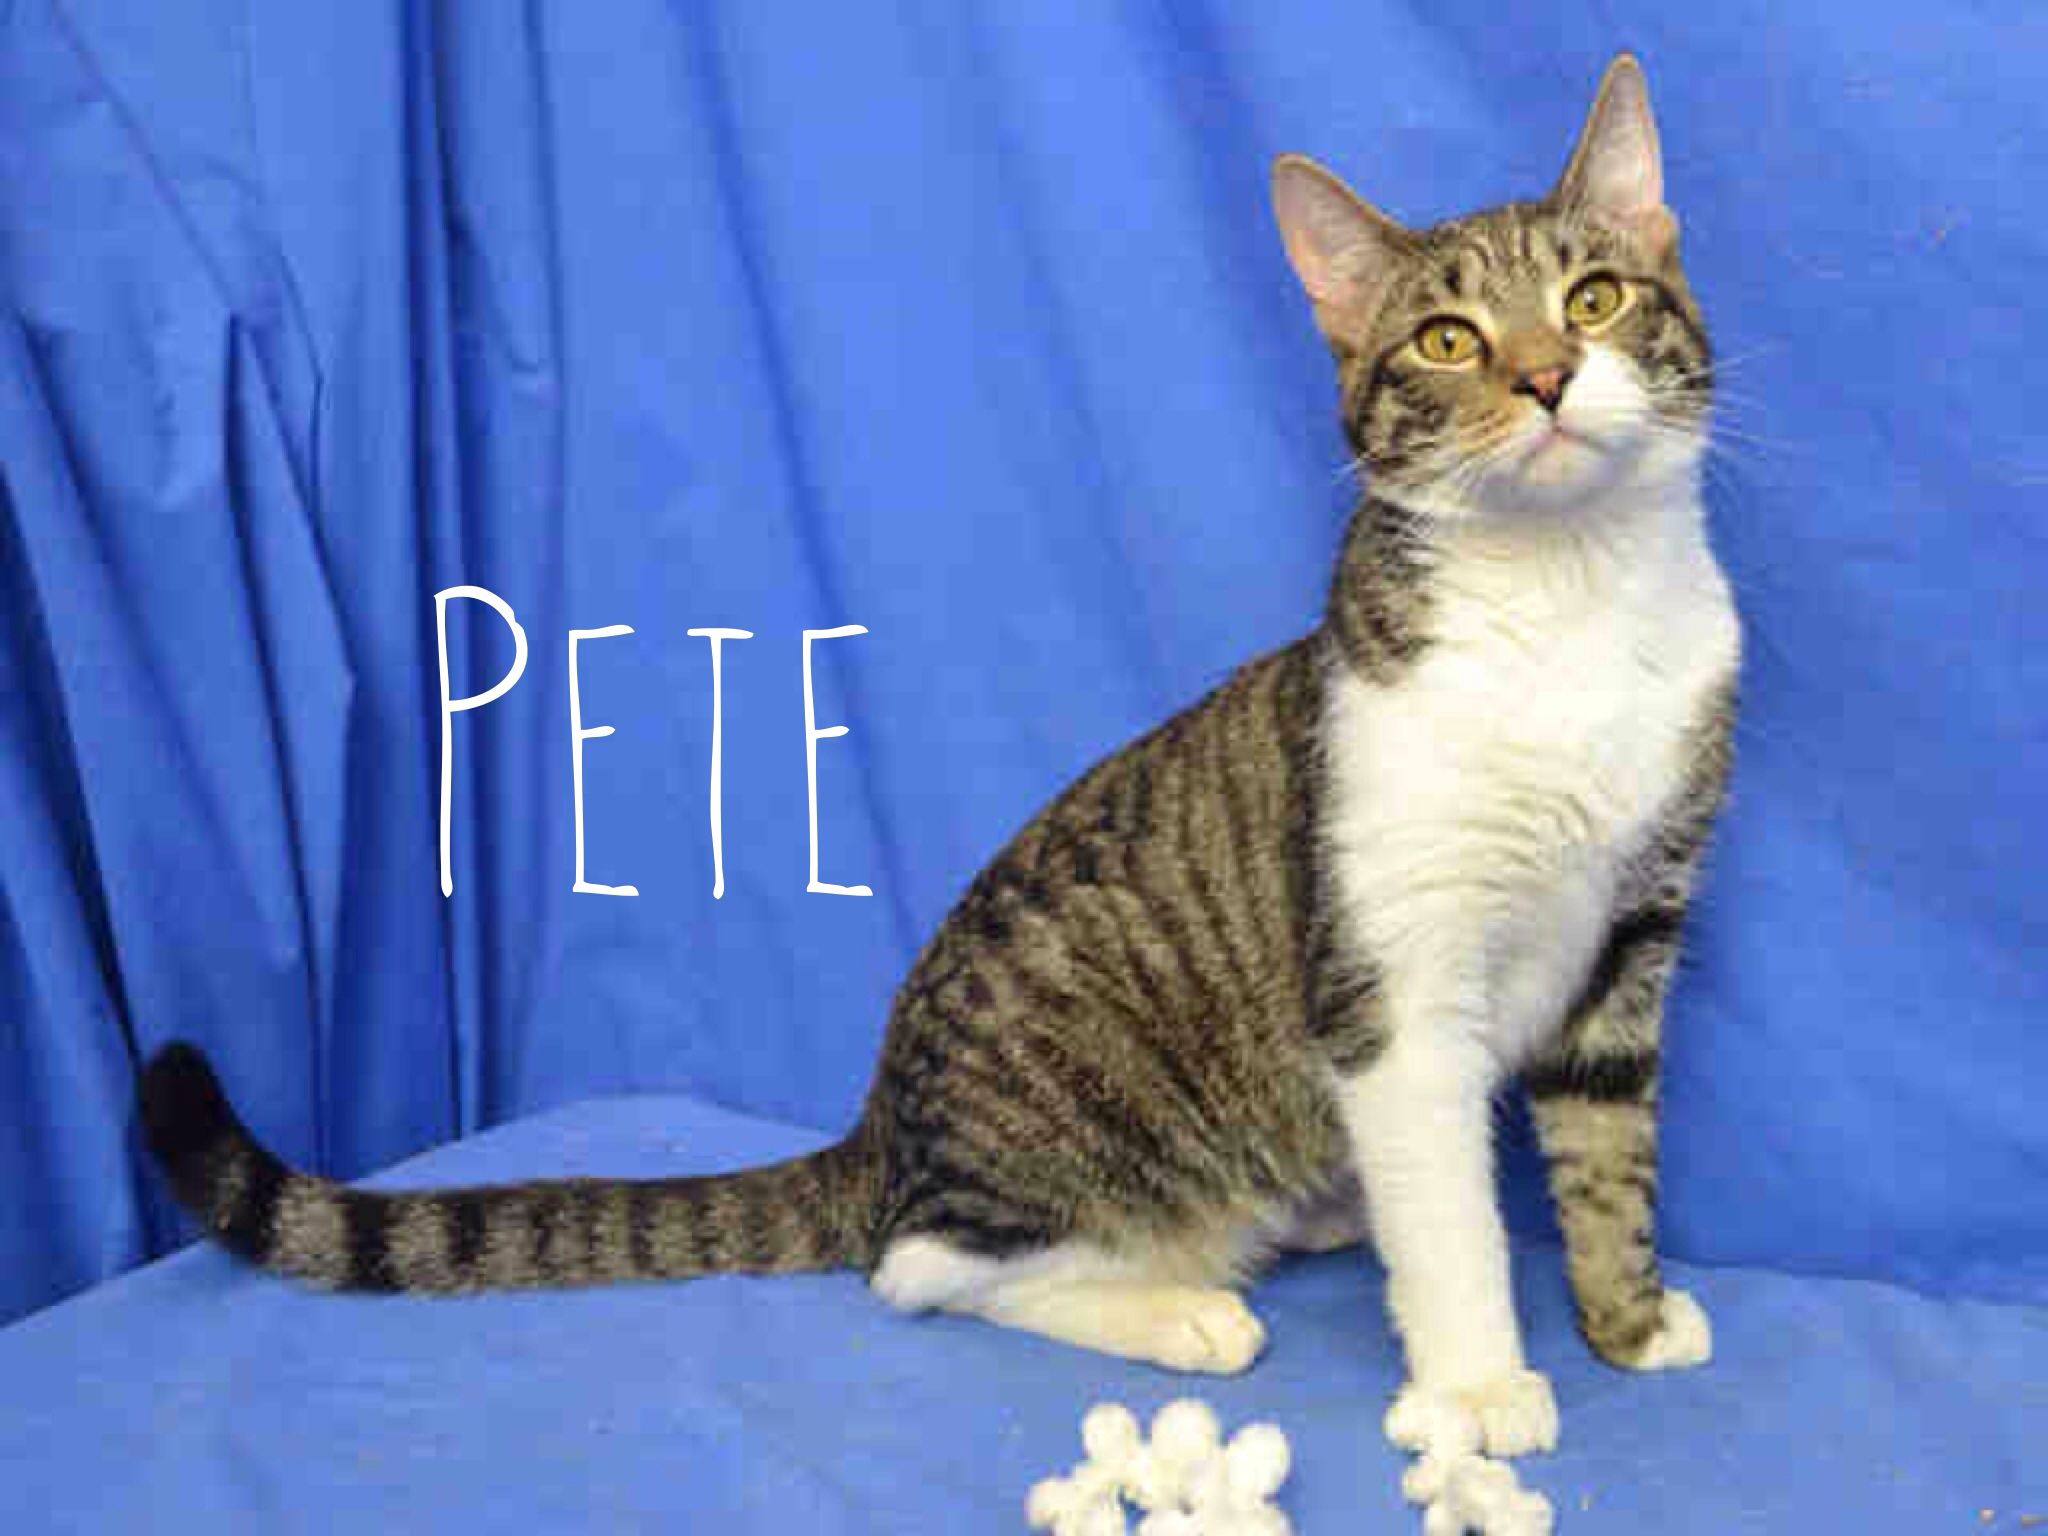 Looking for a new pet? Pete's your guy! kitties cats